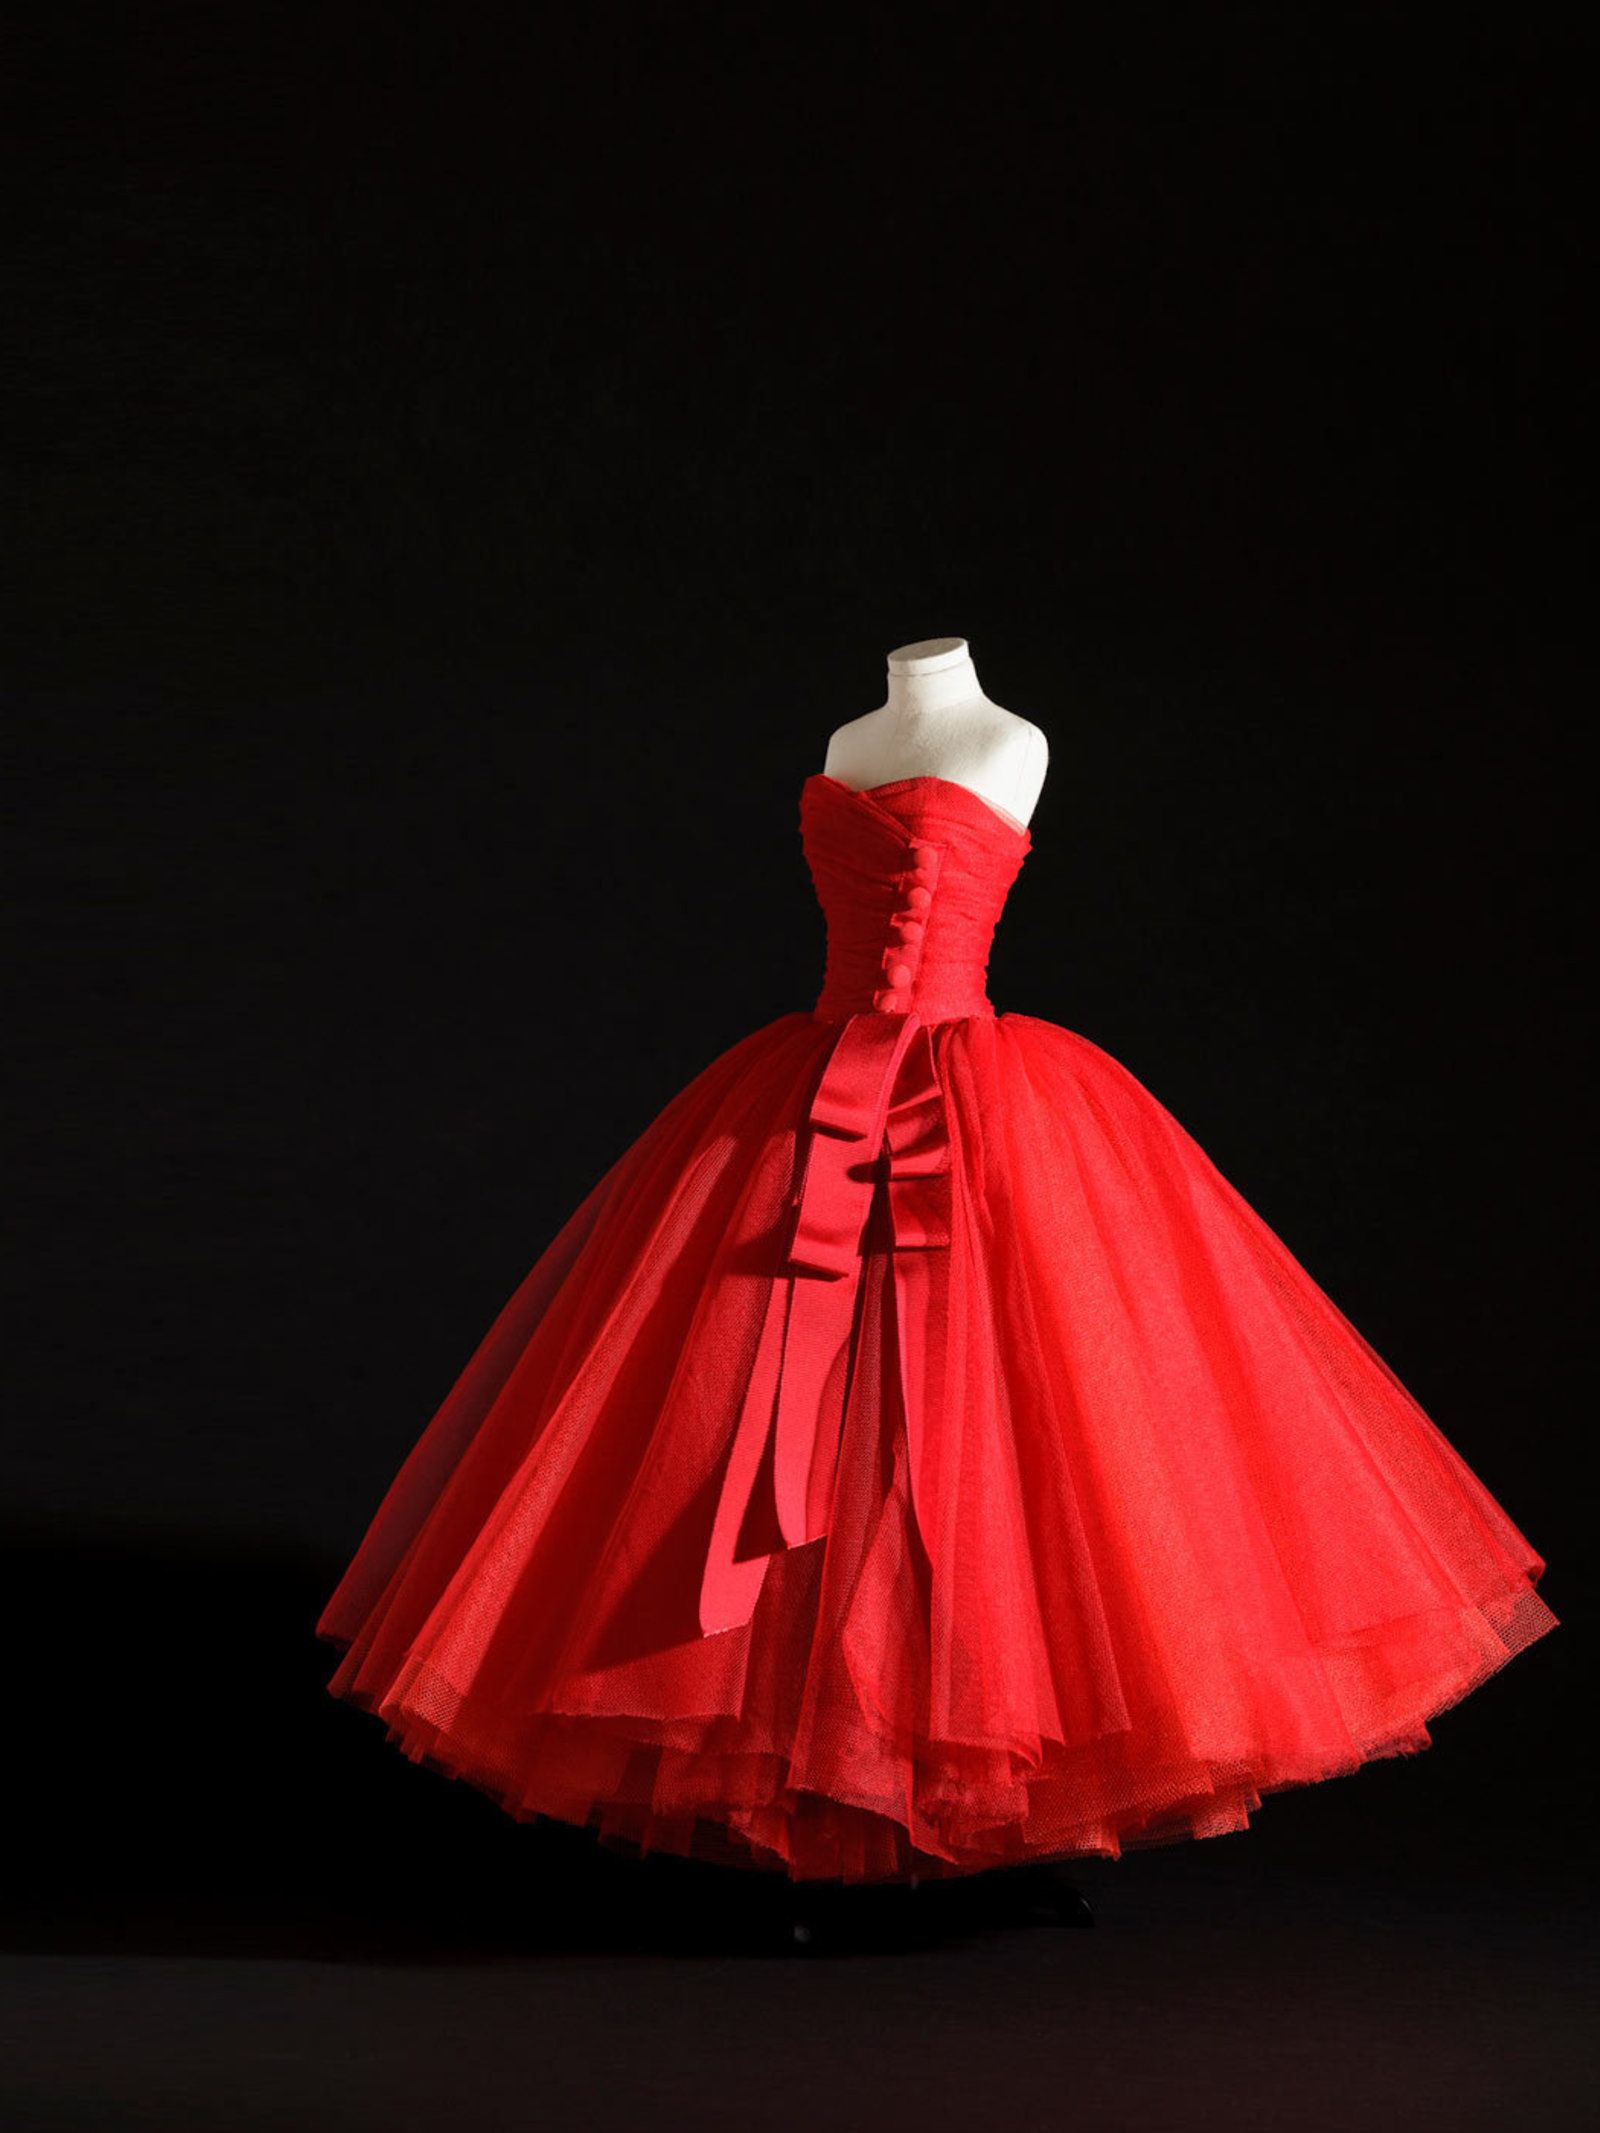 Christian Dior in Miniature | Iconic dresses, Christian ...